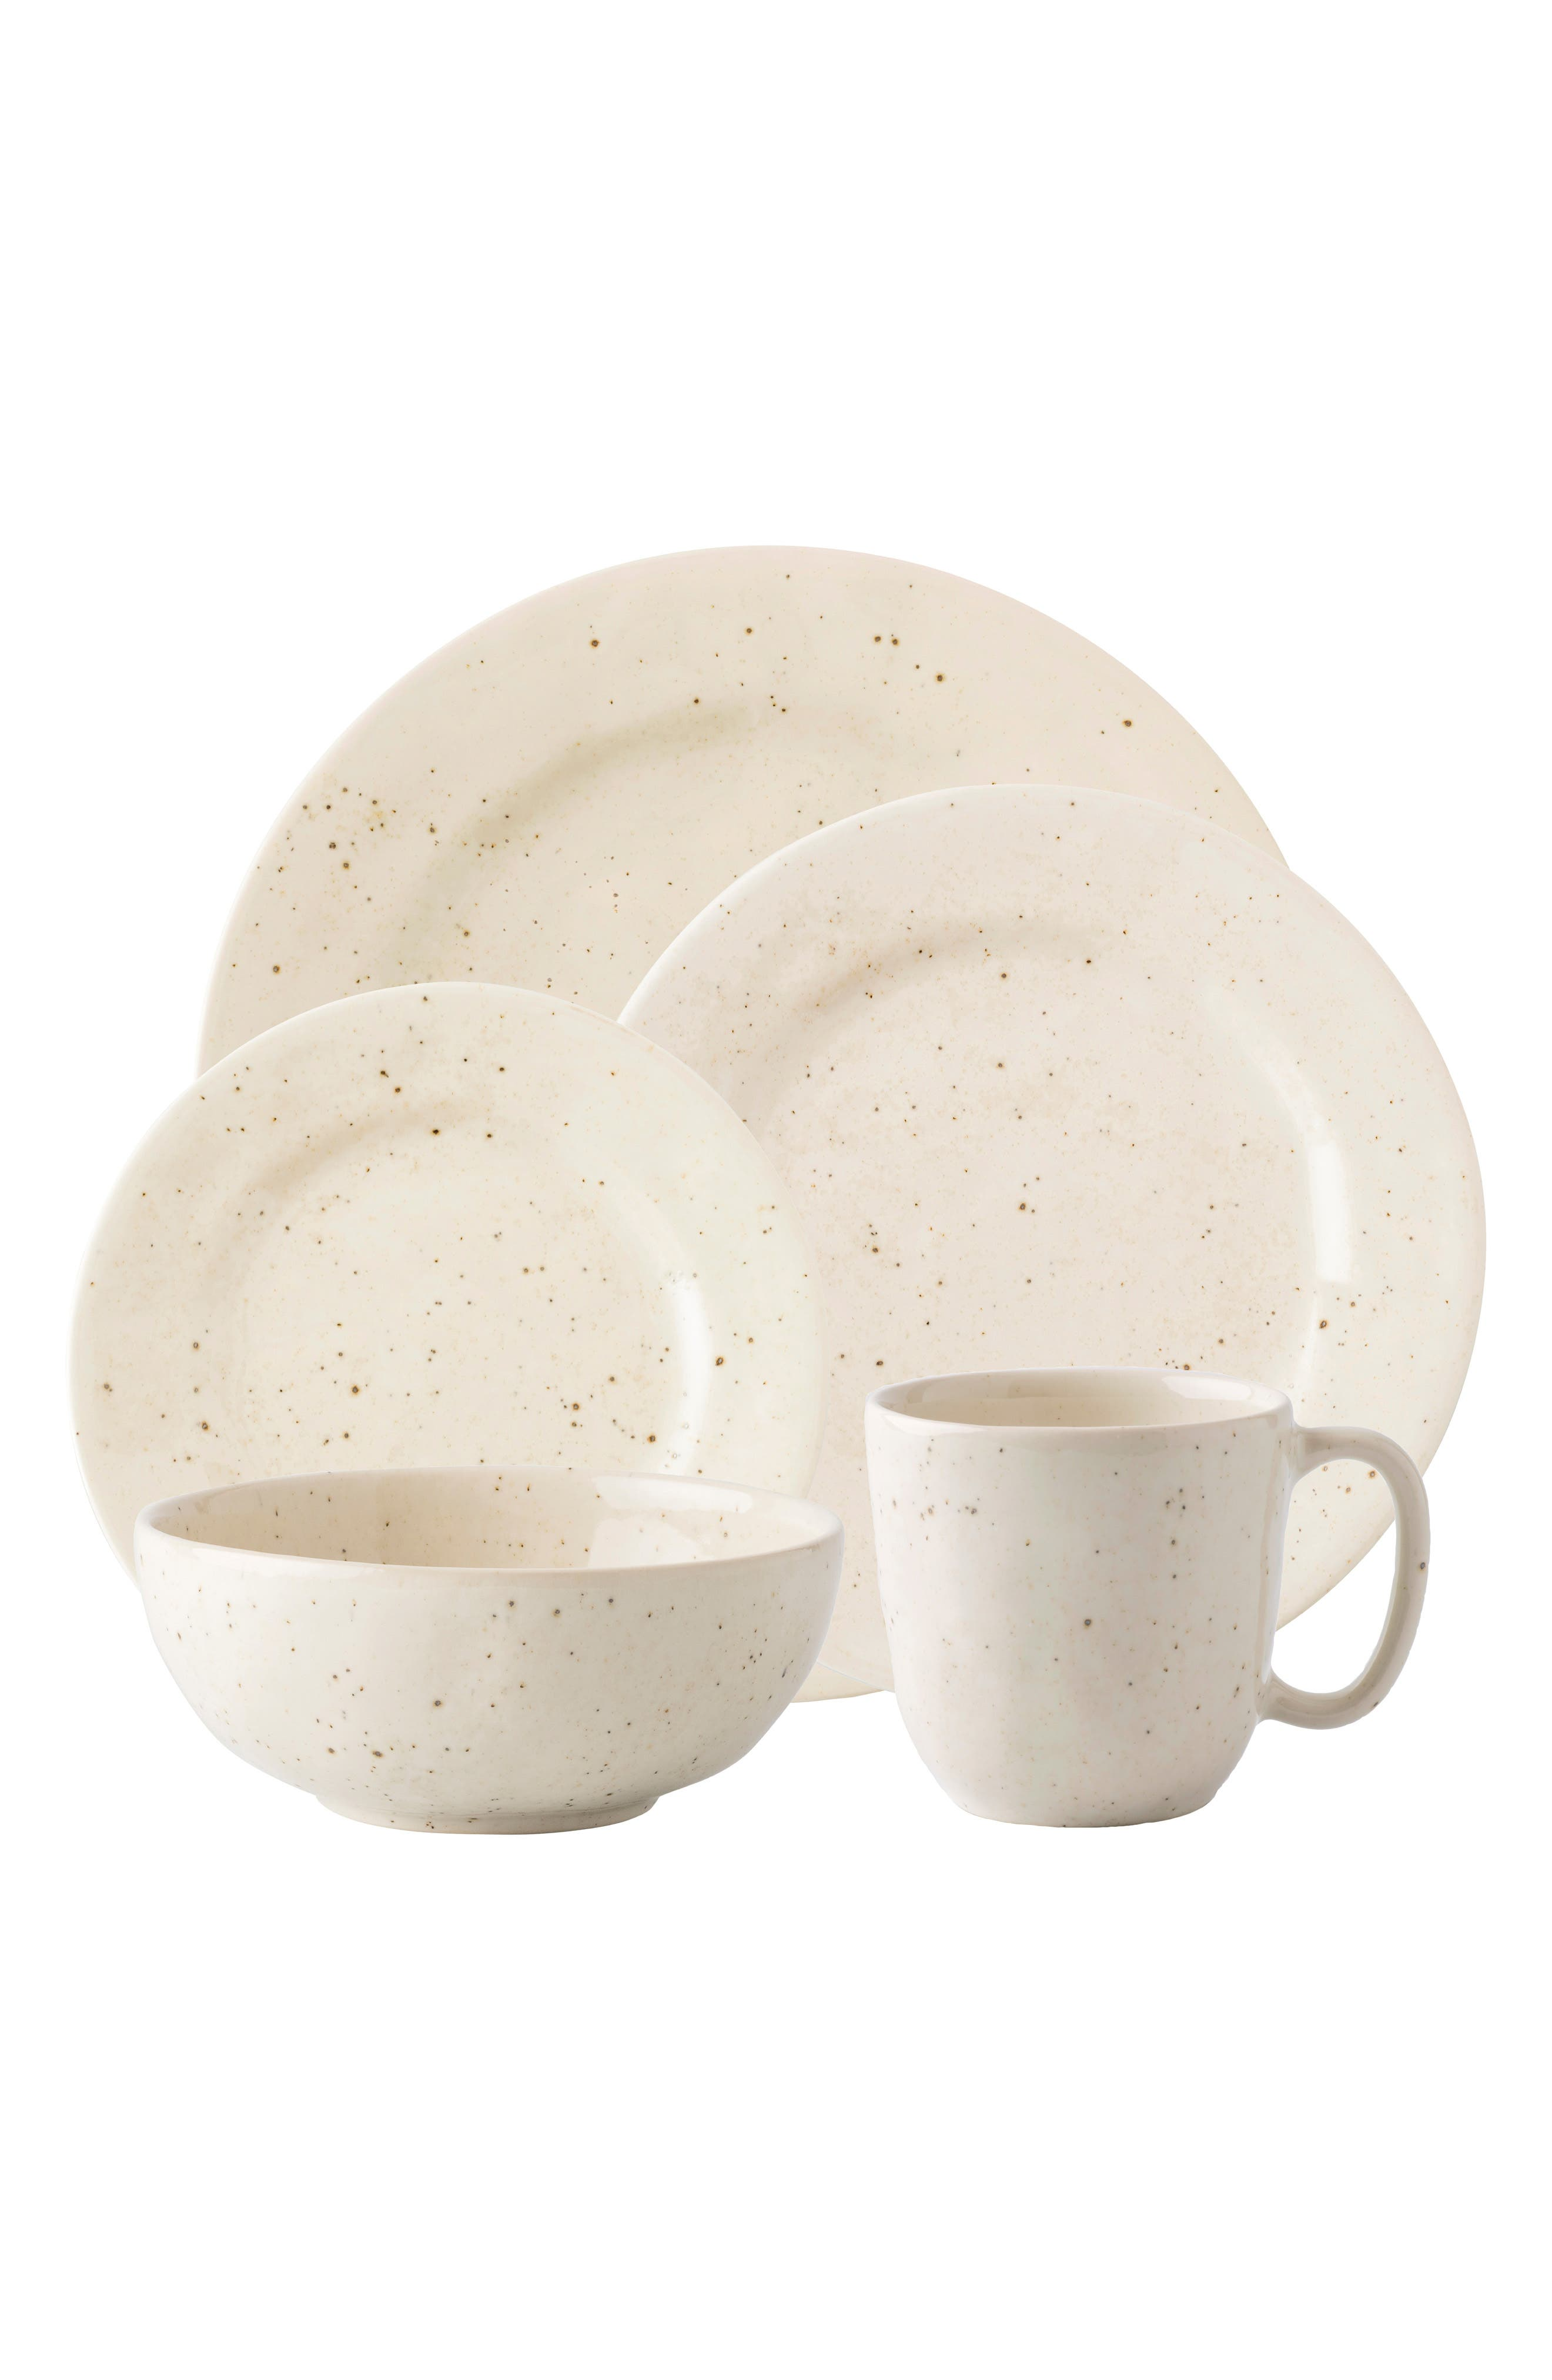 Puro 5-Piece Ceramic Place Setting,                             Main thumbnail 1, color,                             100